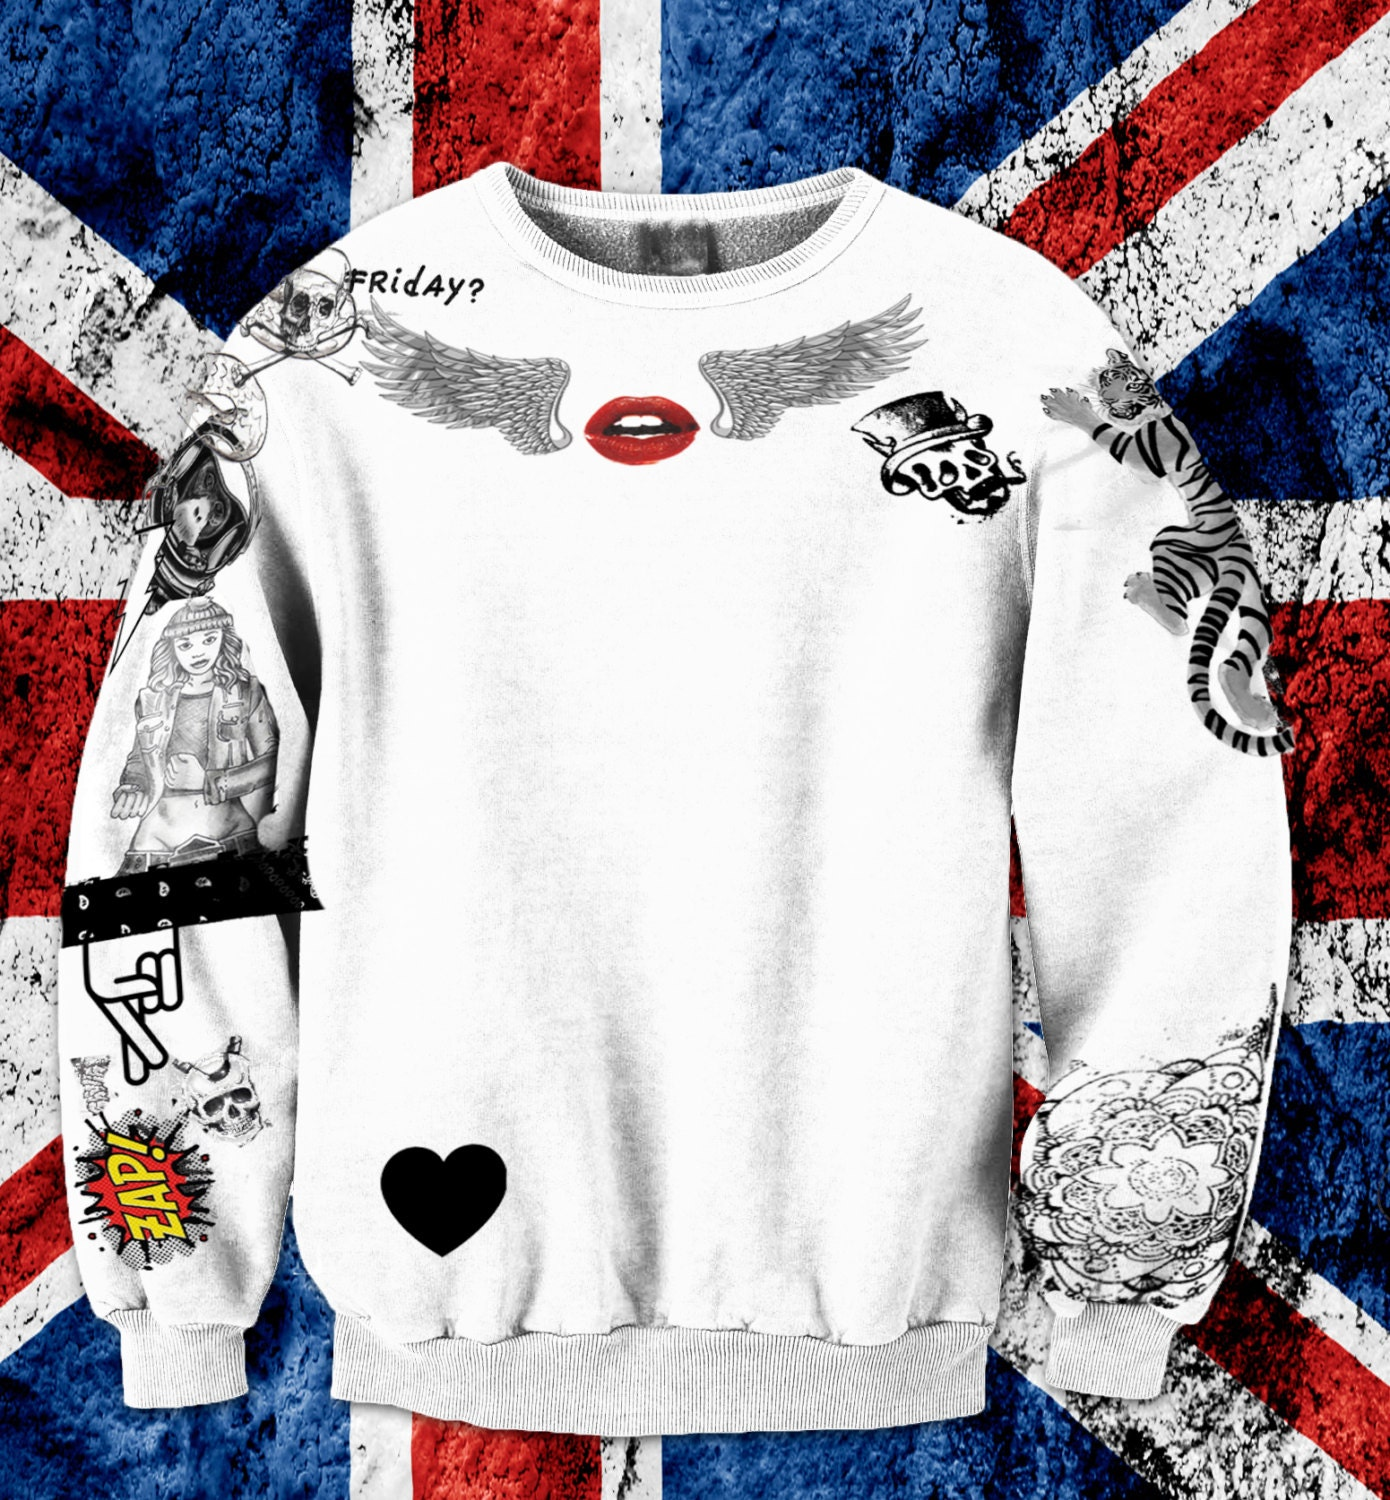 zayn malik tattoo shirt - photo #14